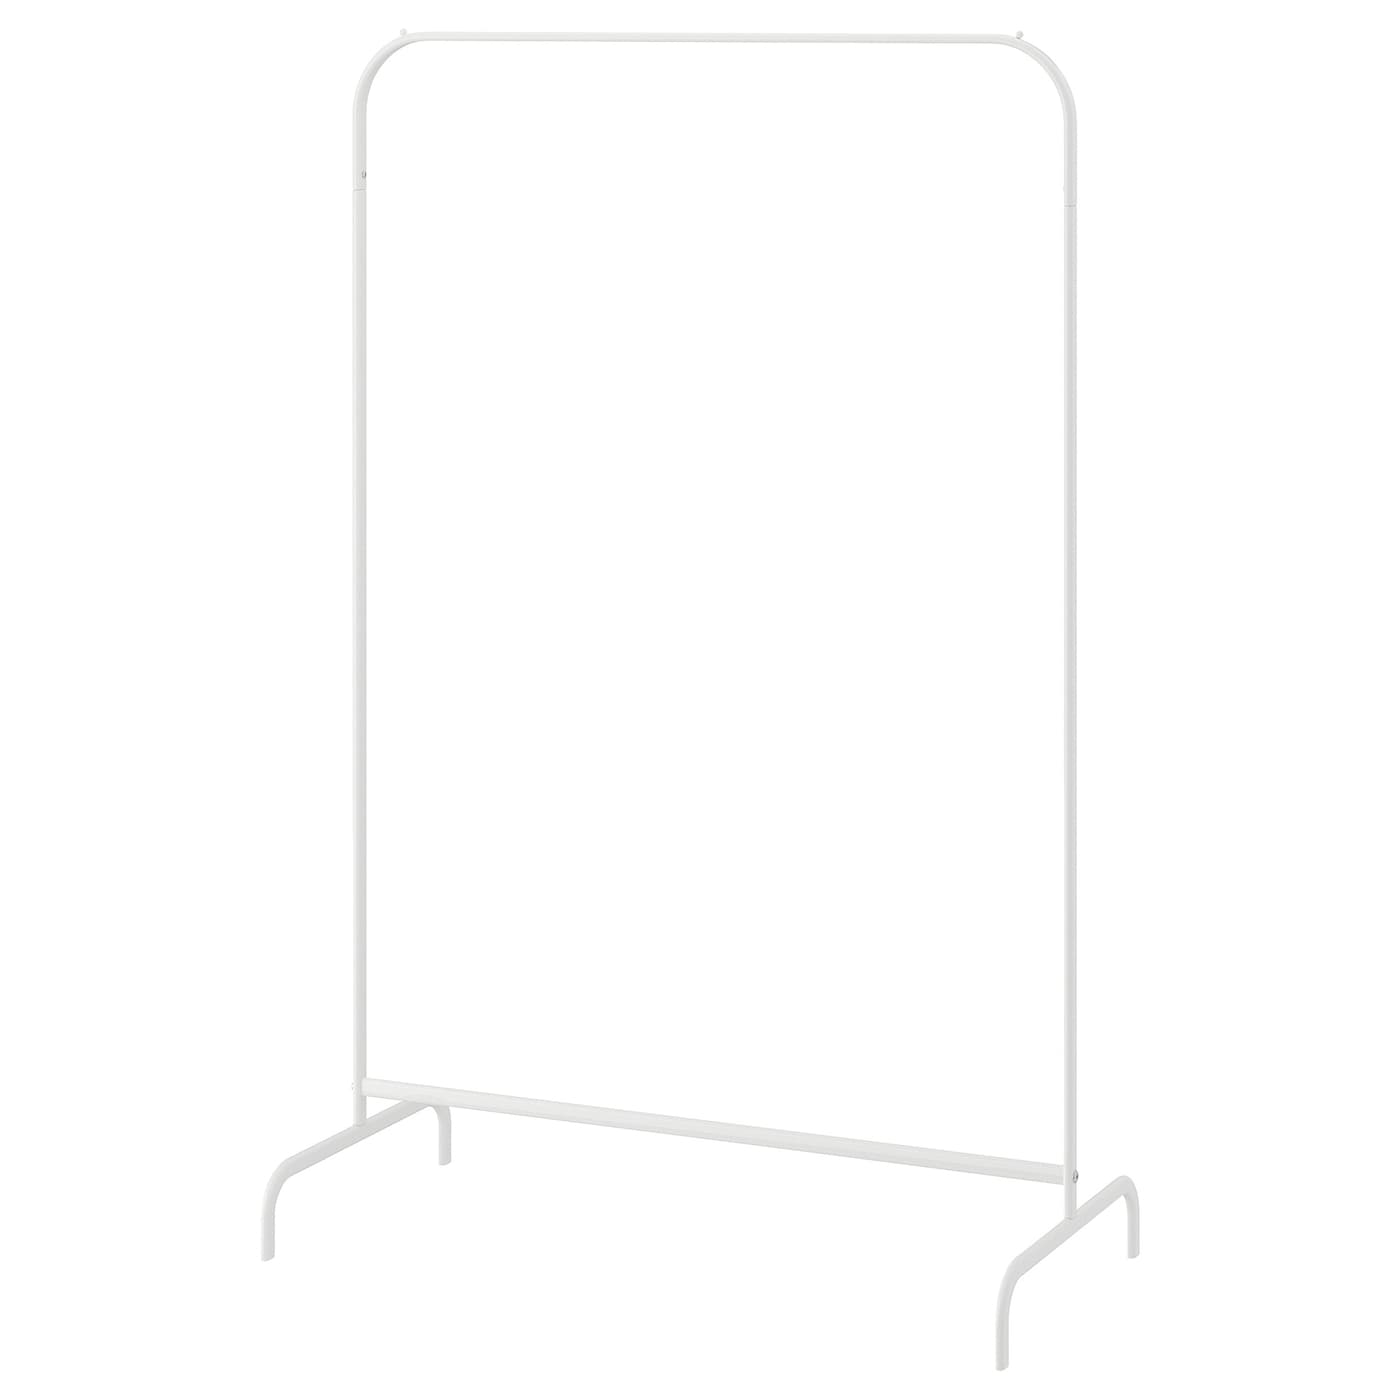 IKEA MULIG clothes rack The plastic feet protect the surface against scratching.